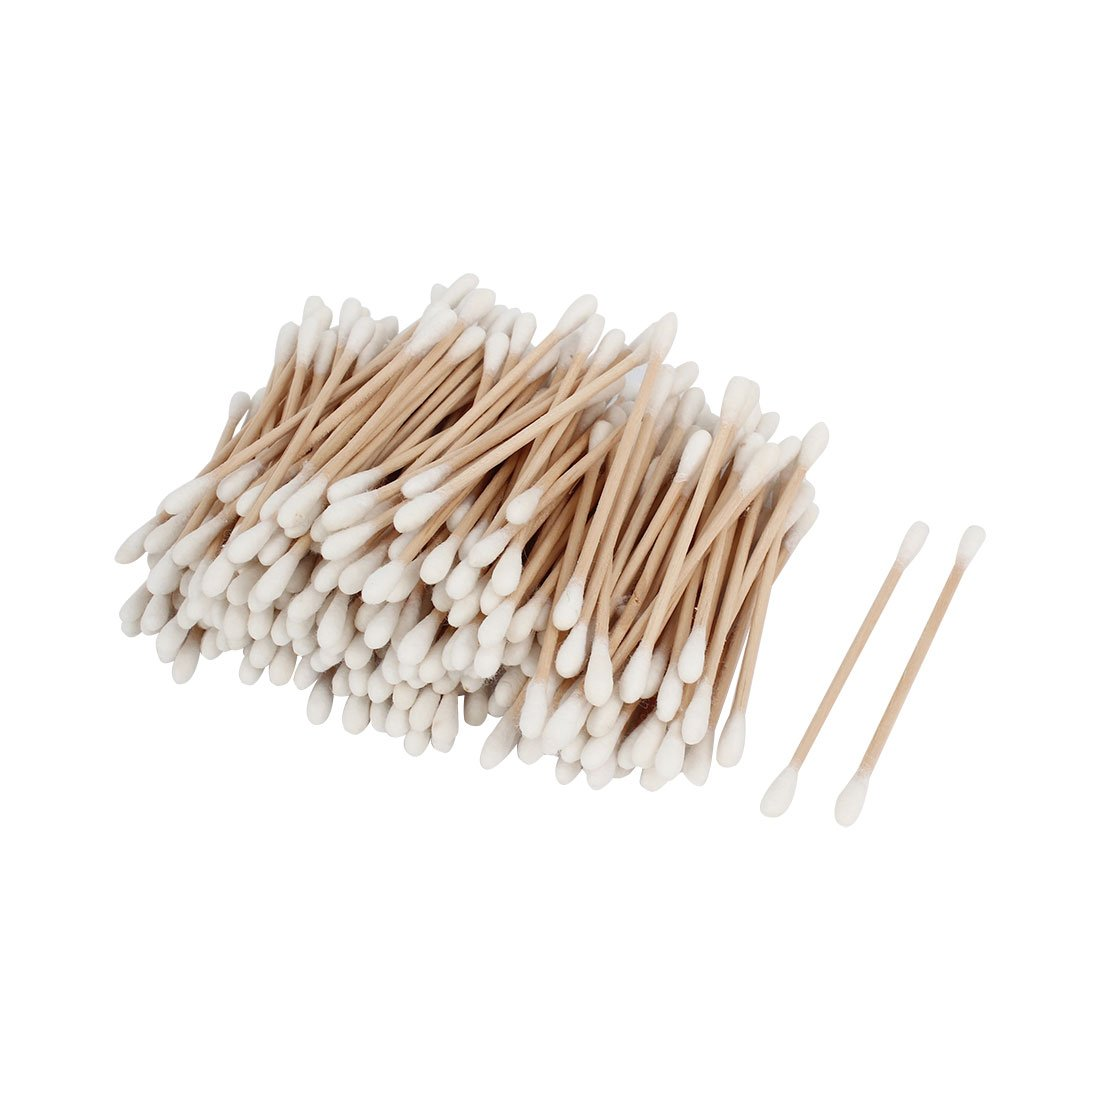 uxcell Disposable Double End Wooden Tube Cosmetic Cotton Swab Bud 250 Pcs a14092200ux0748